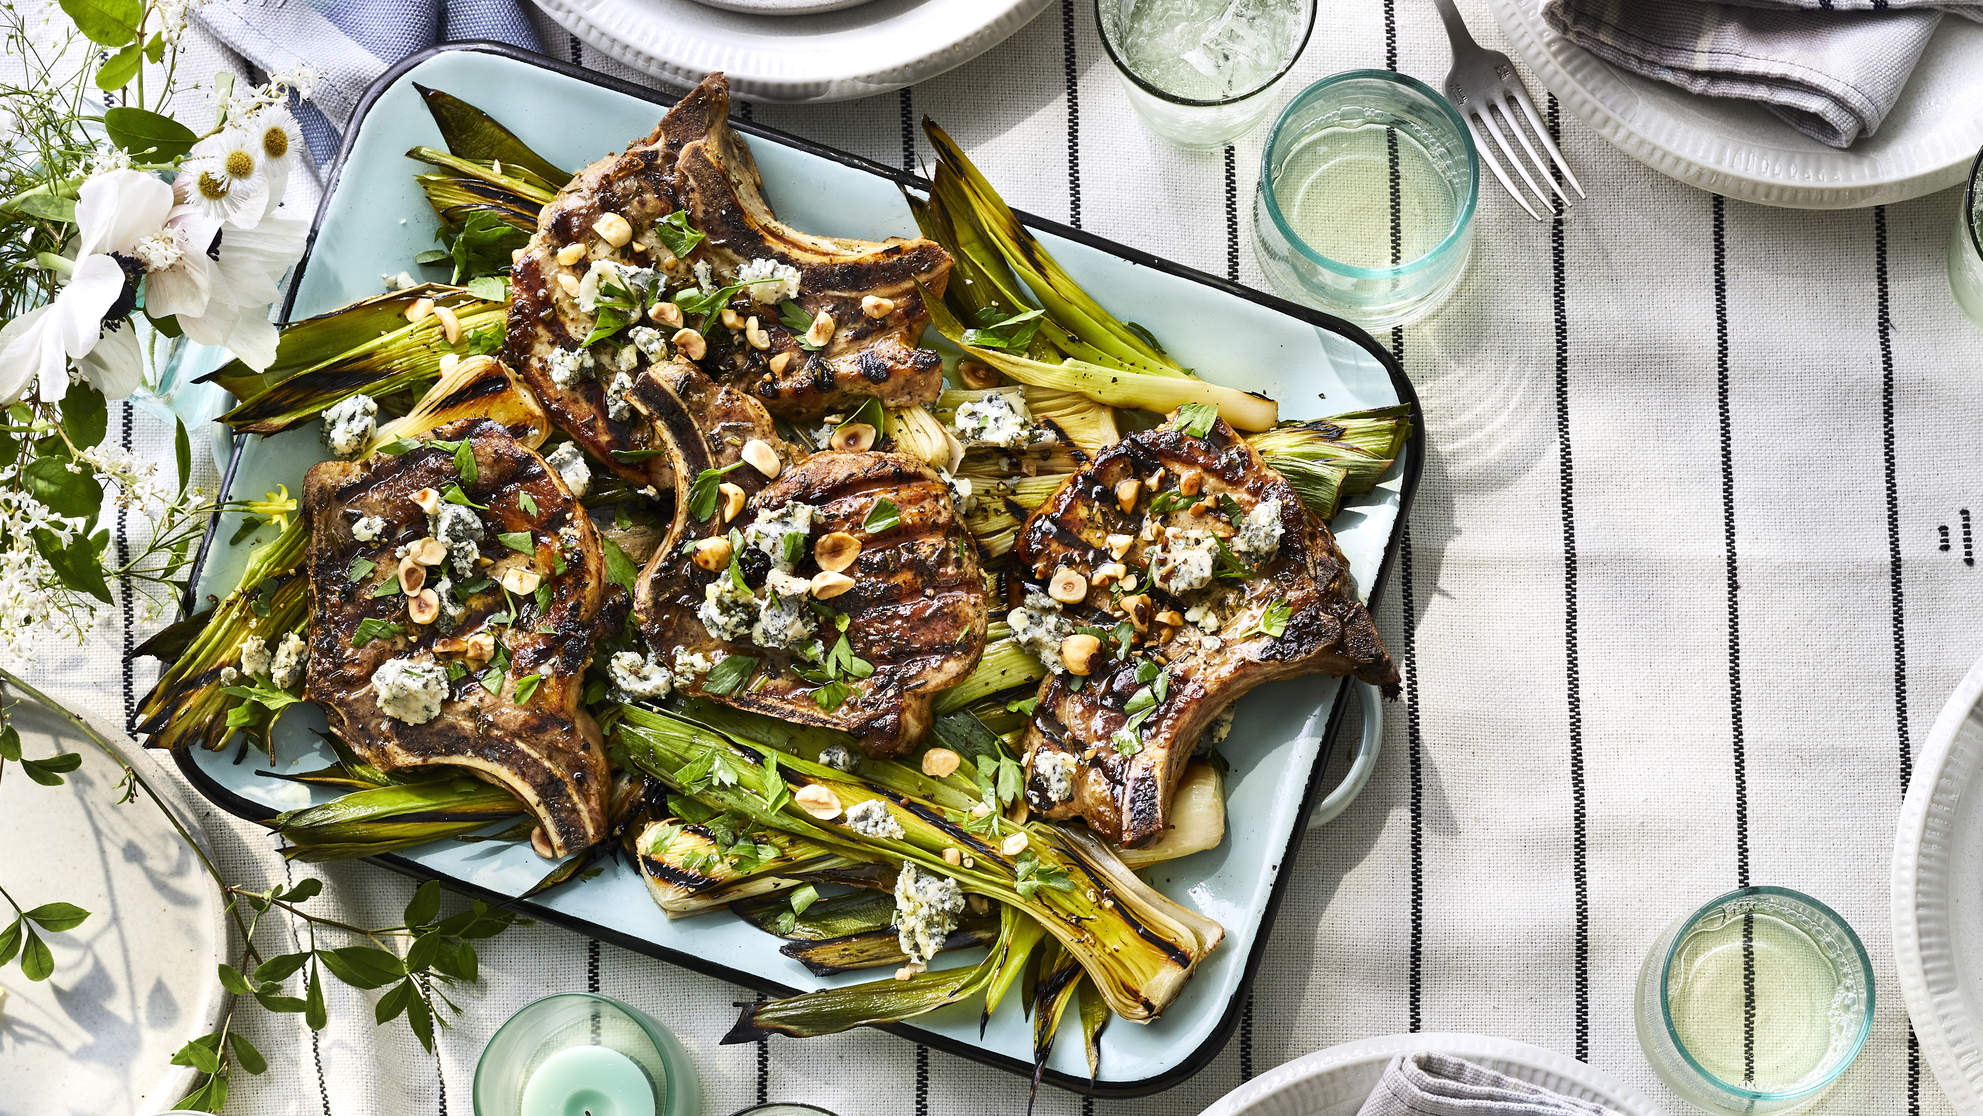 Rosemary Pork Chops With Grilled Leeks